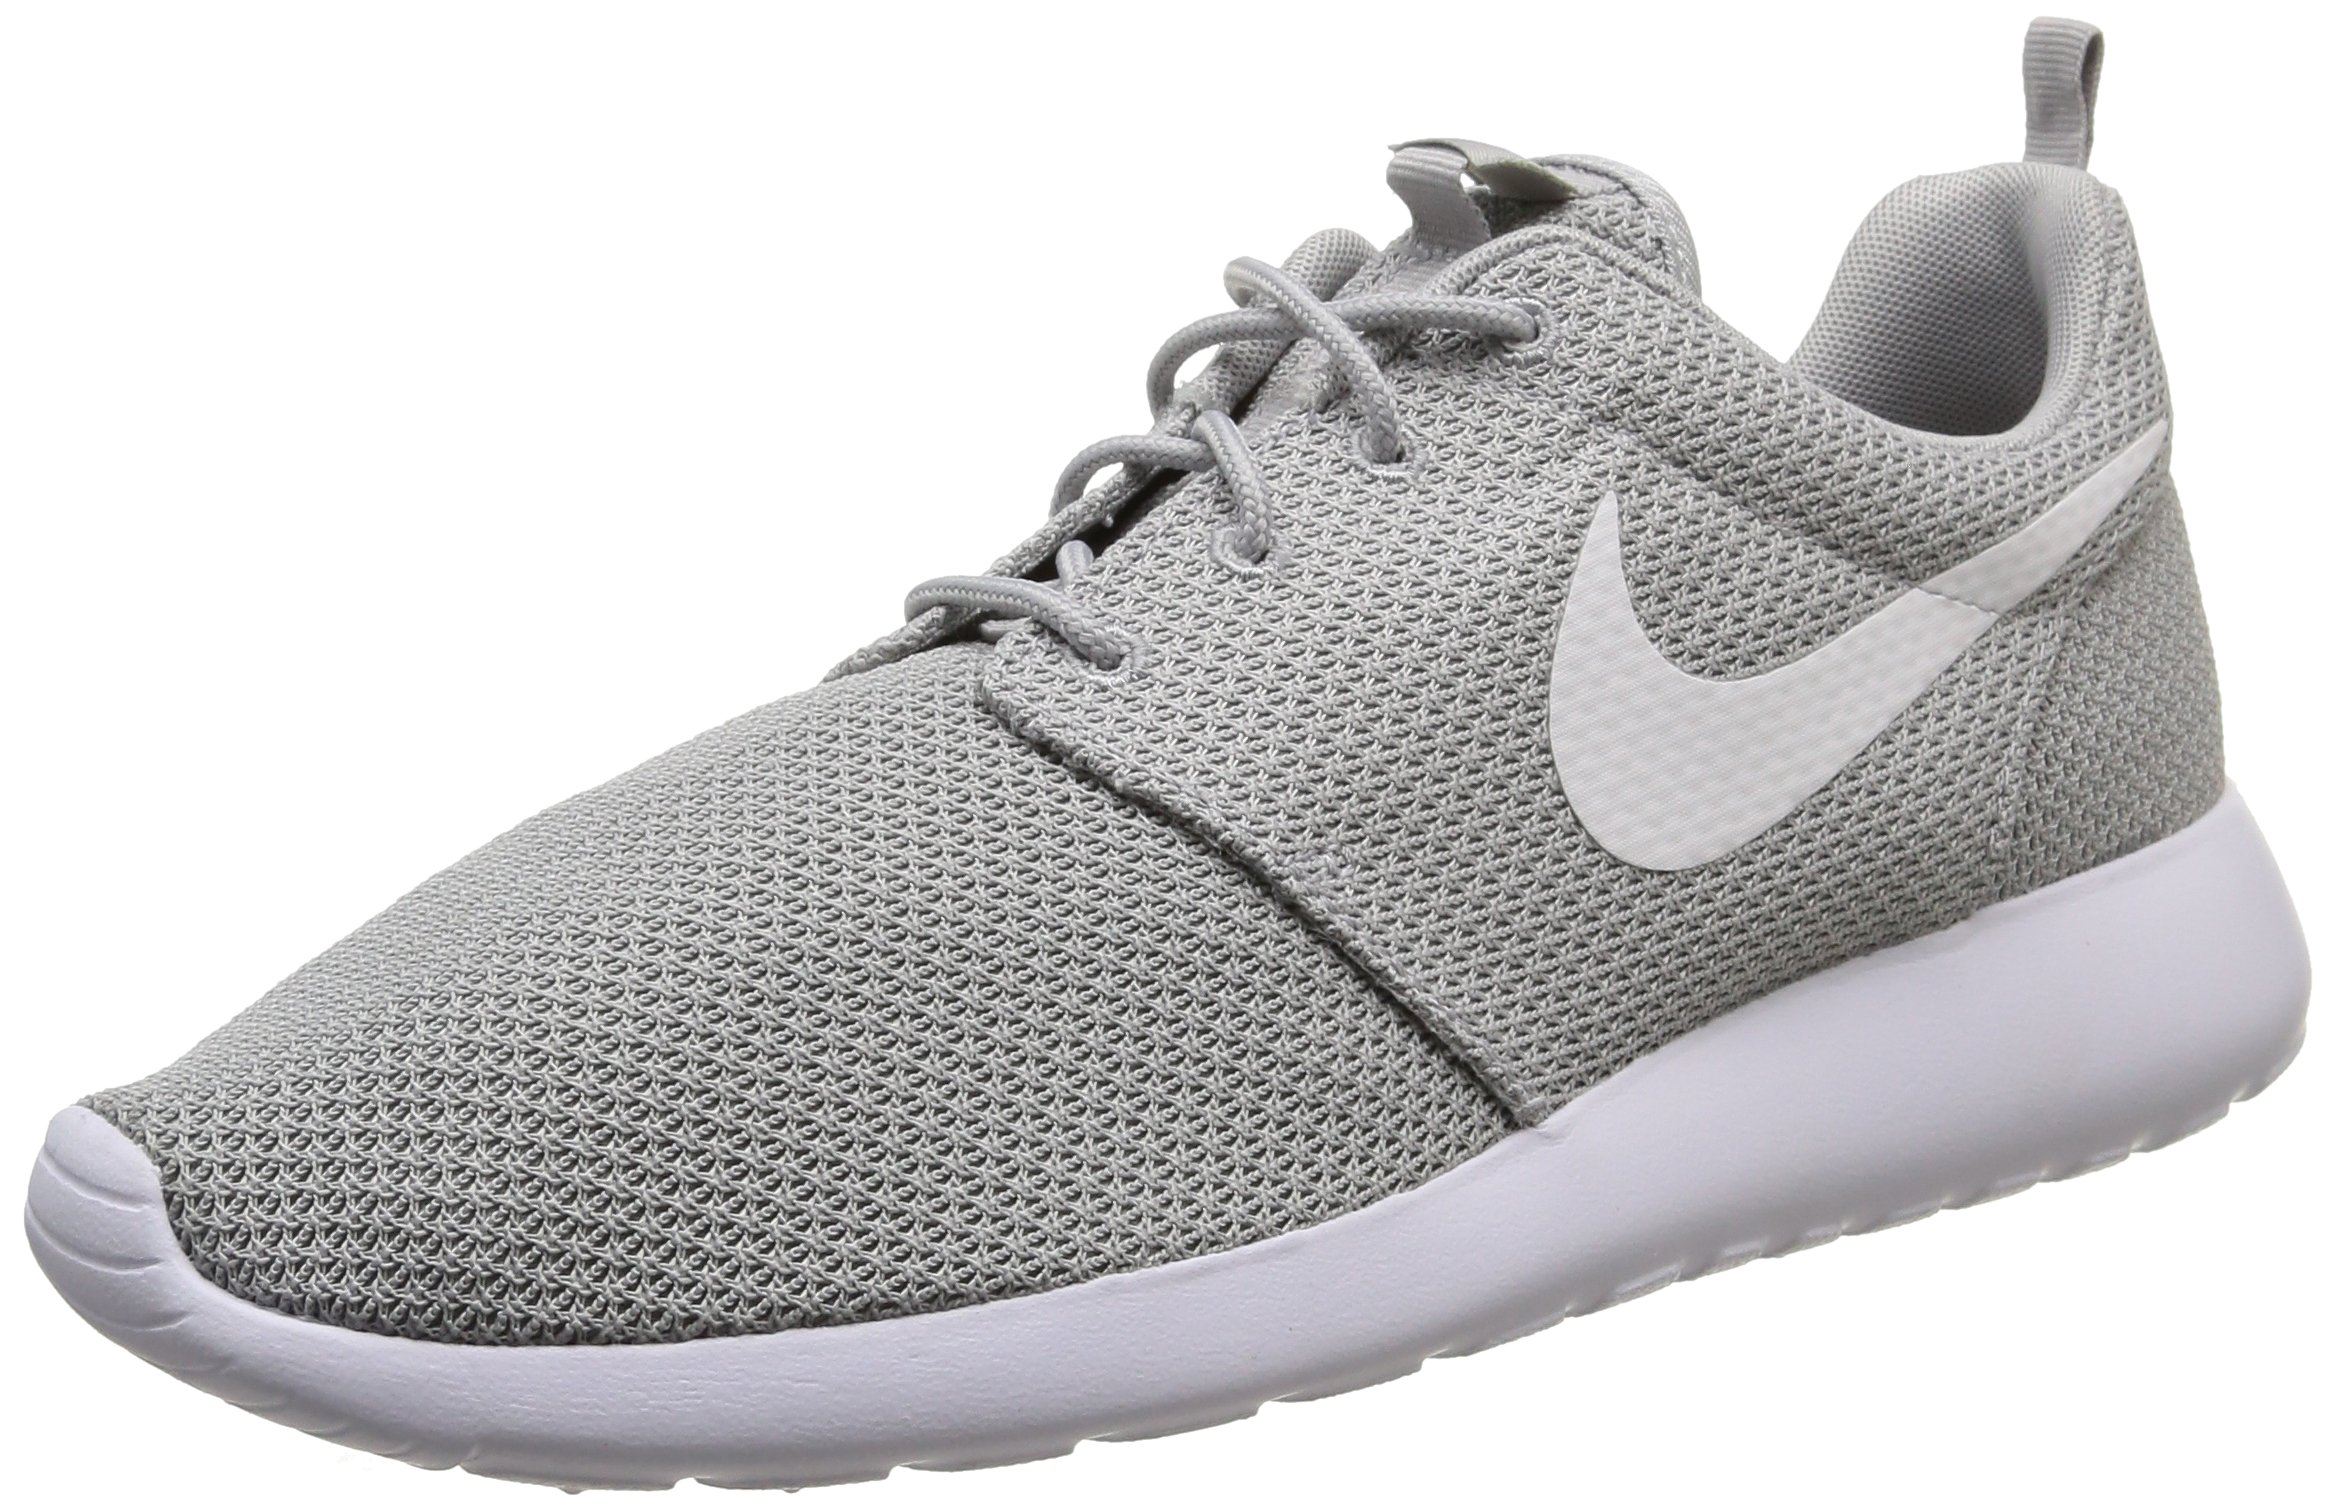 new style 31cc5 0703d Galleon - Nike Mens Roshe One Running Shoes Wolf Grey White 511881-023 Size  8.5